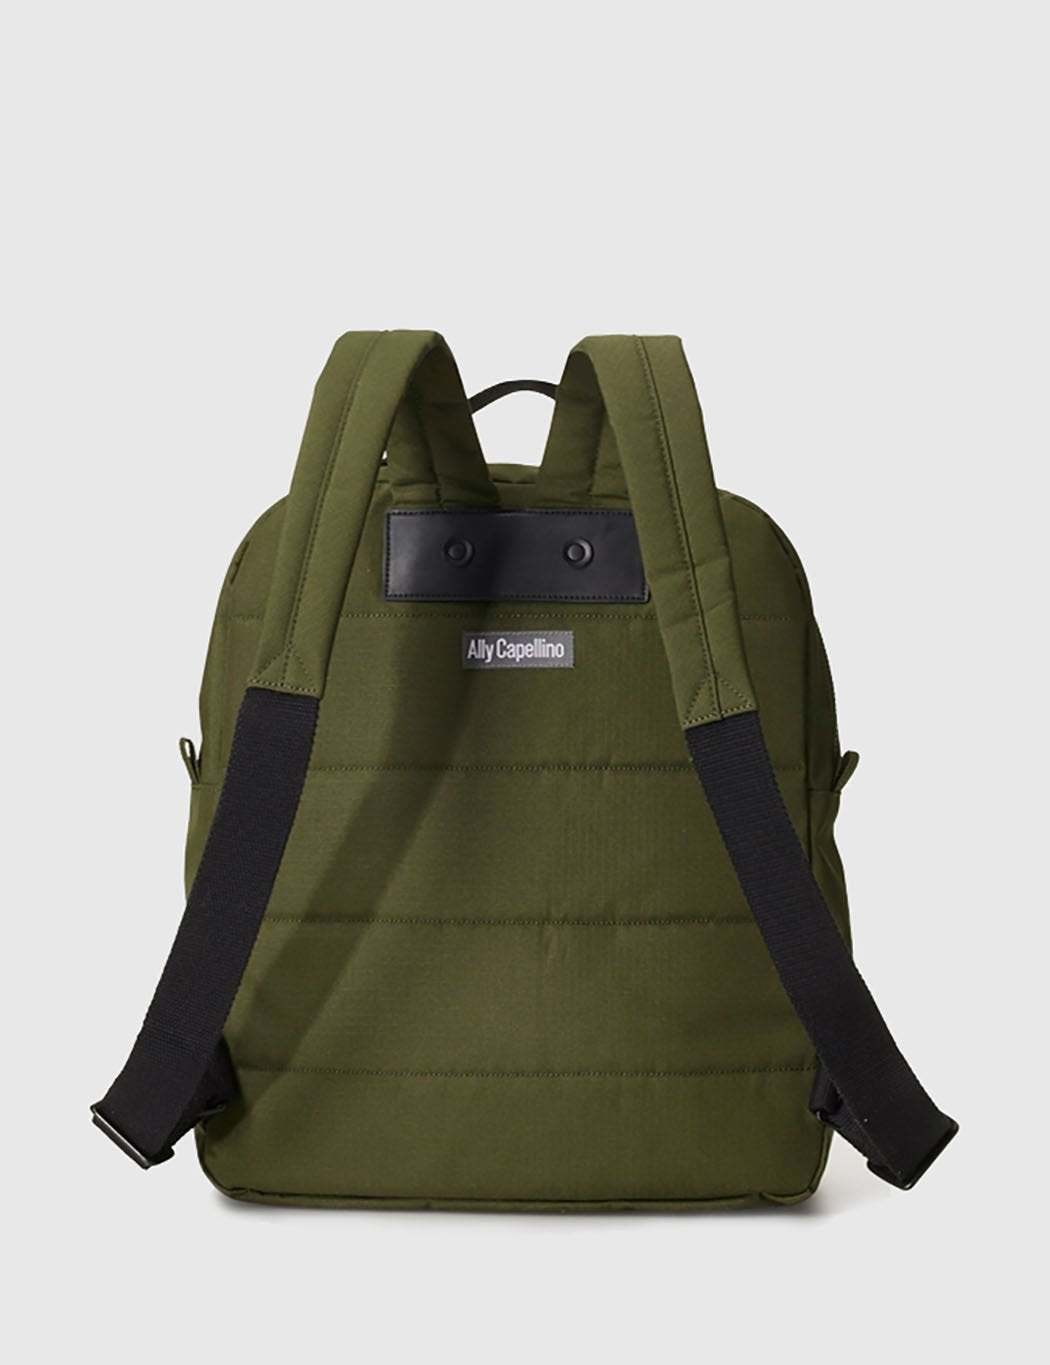 Ally Capellino Ian Ripstop Backpack - Green